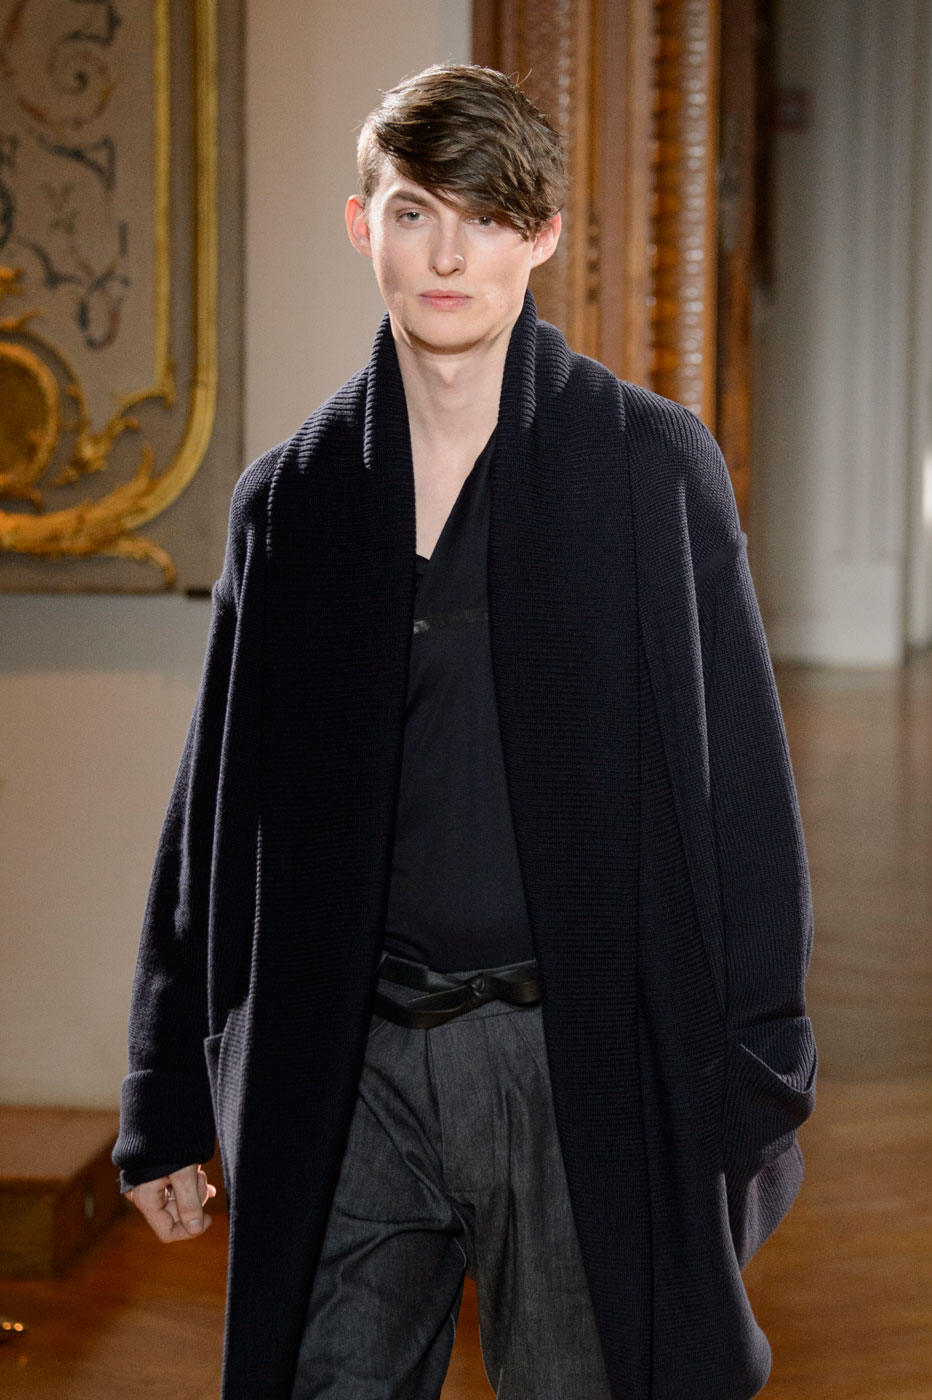 Gustavolins-Prive-fashion-runway-show-haute-couture-paris-spring-2015-the-impression-26